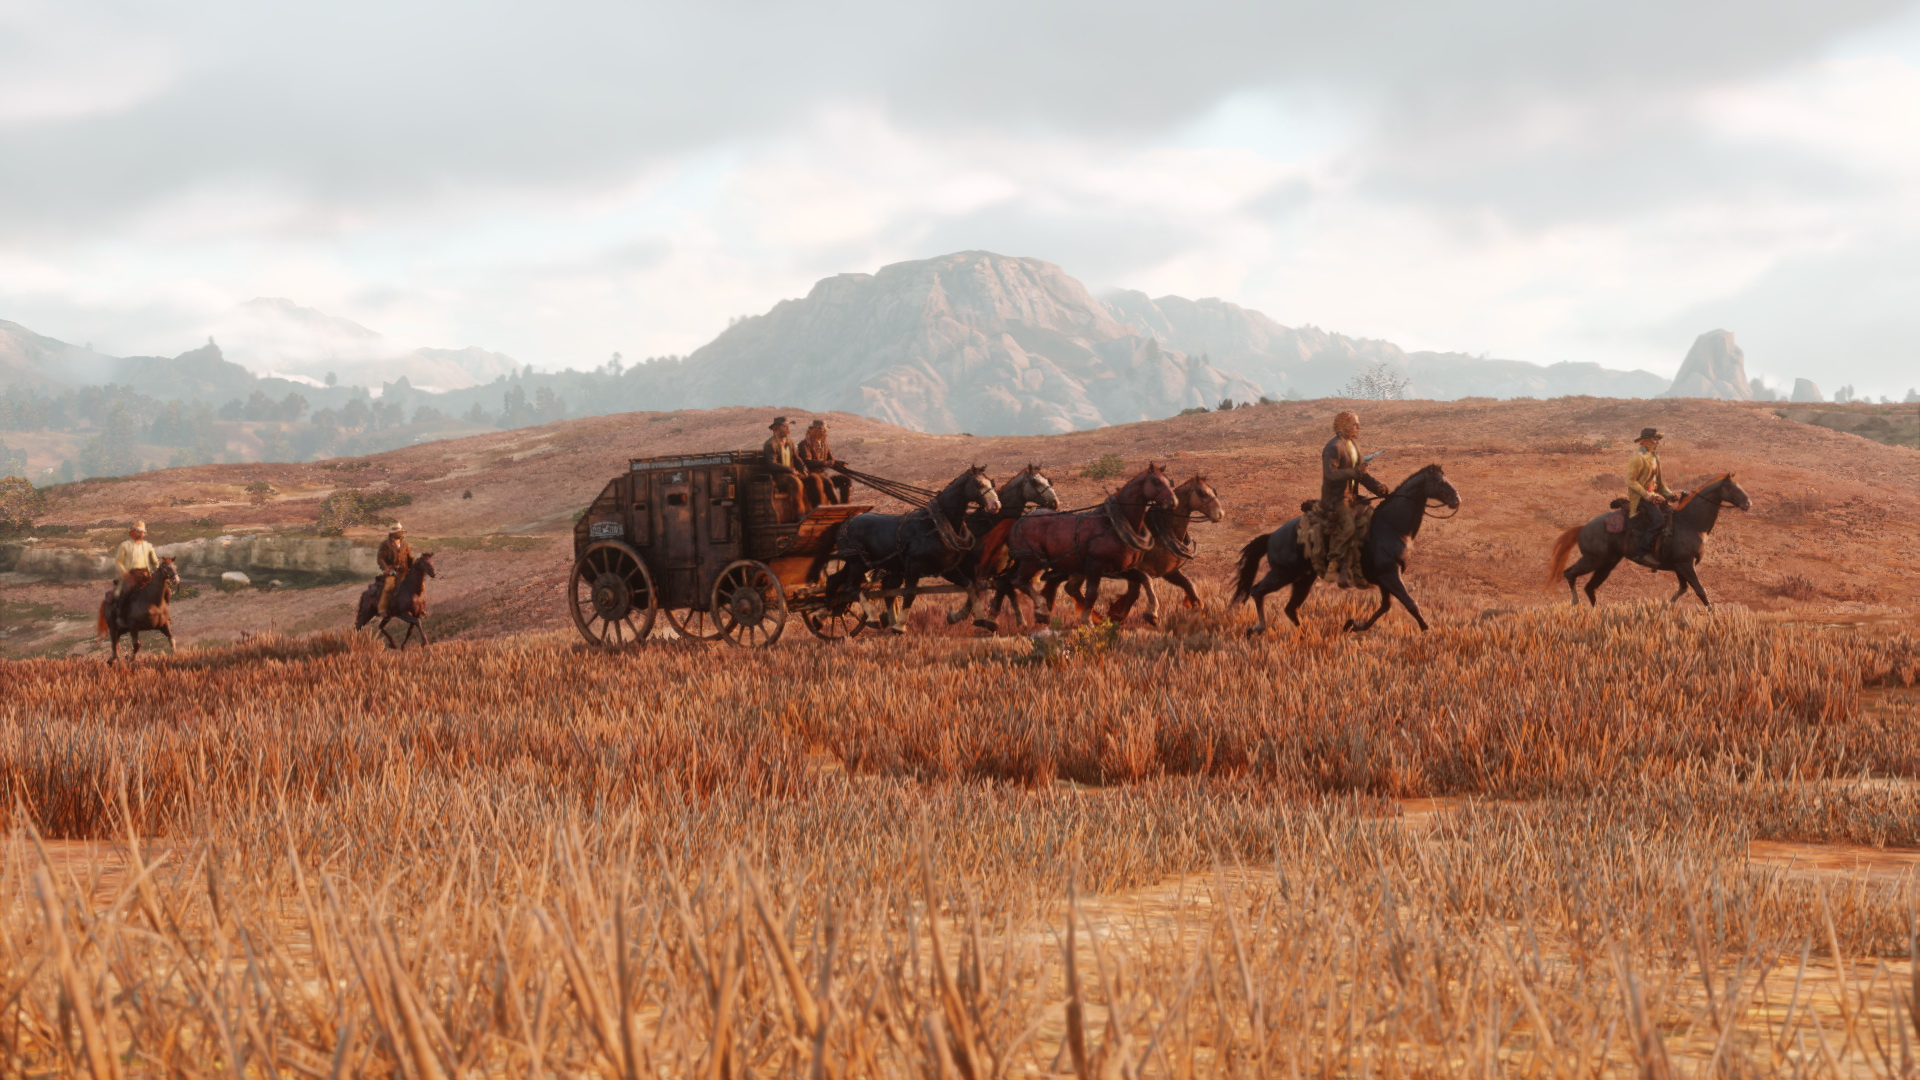 rdr2_screenshot-004